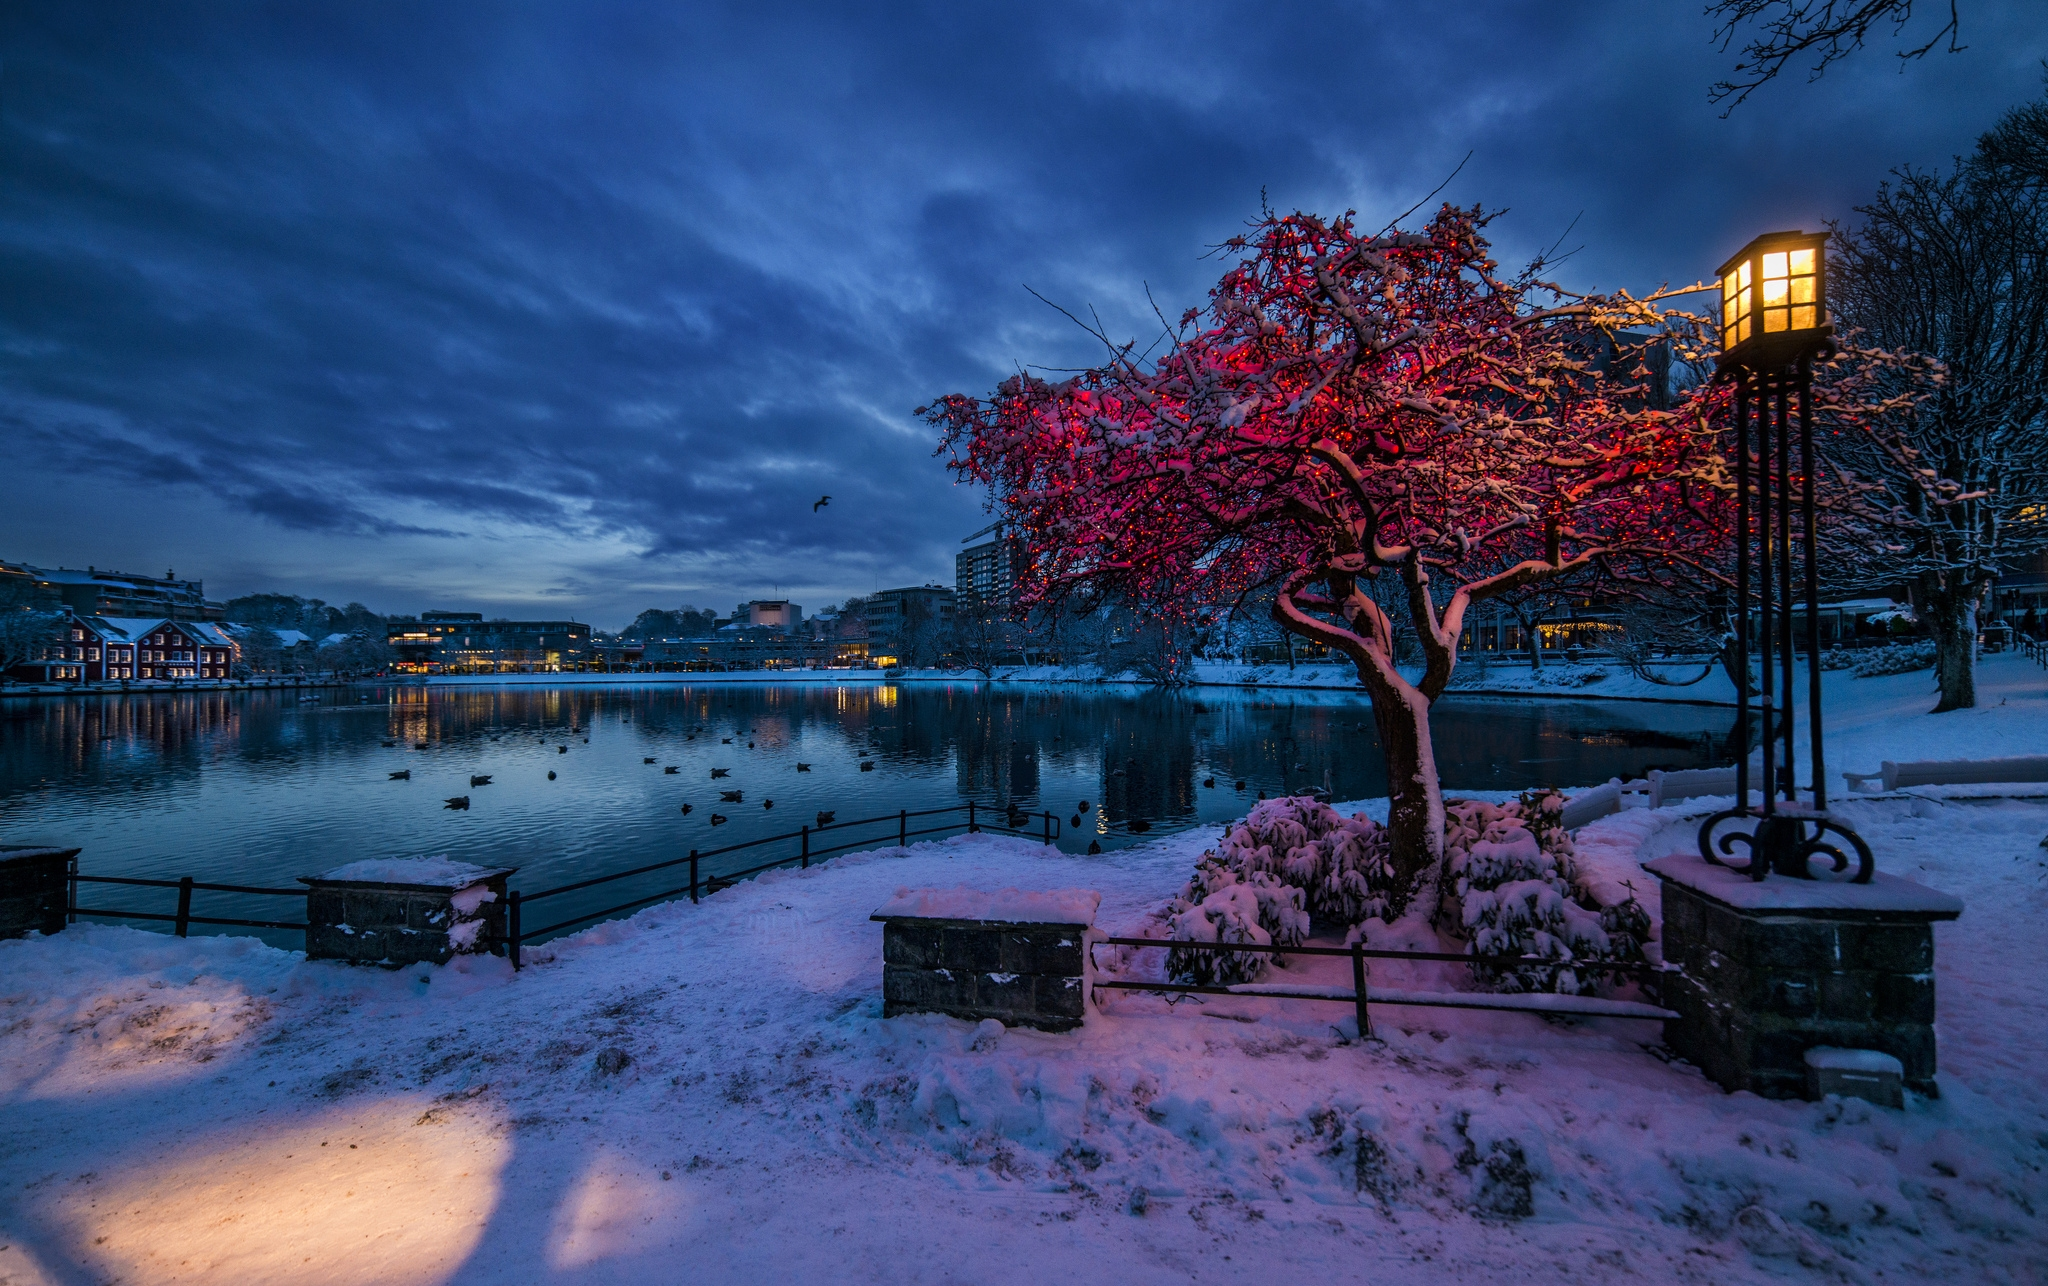 Scenery, Wallpaper, Nature, Snow, Water, Night